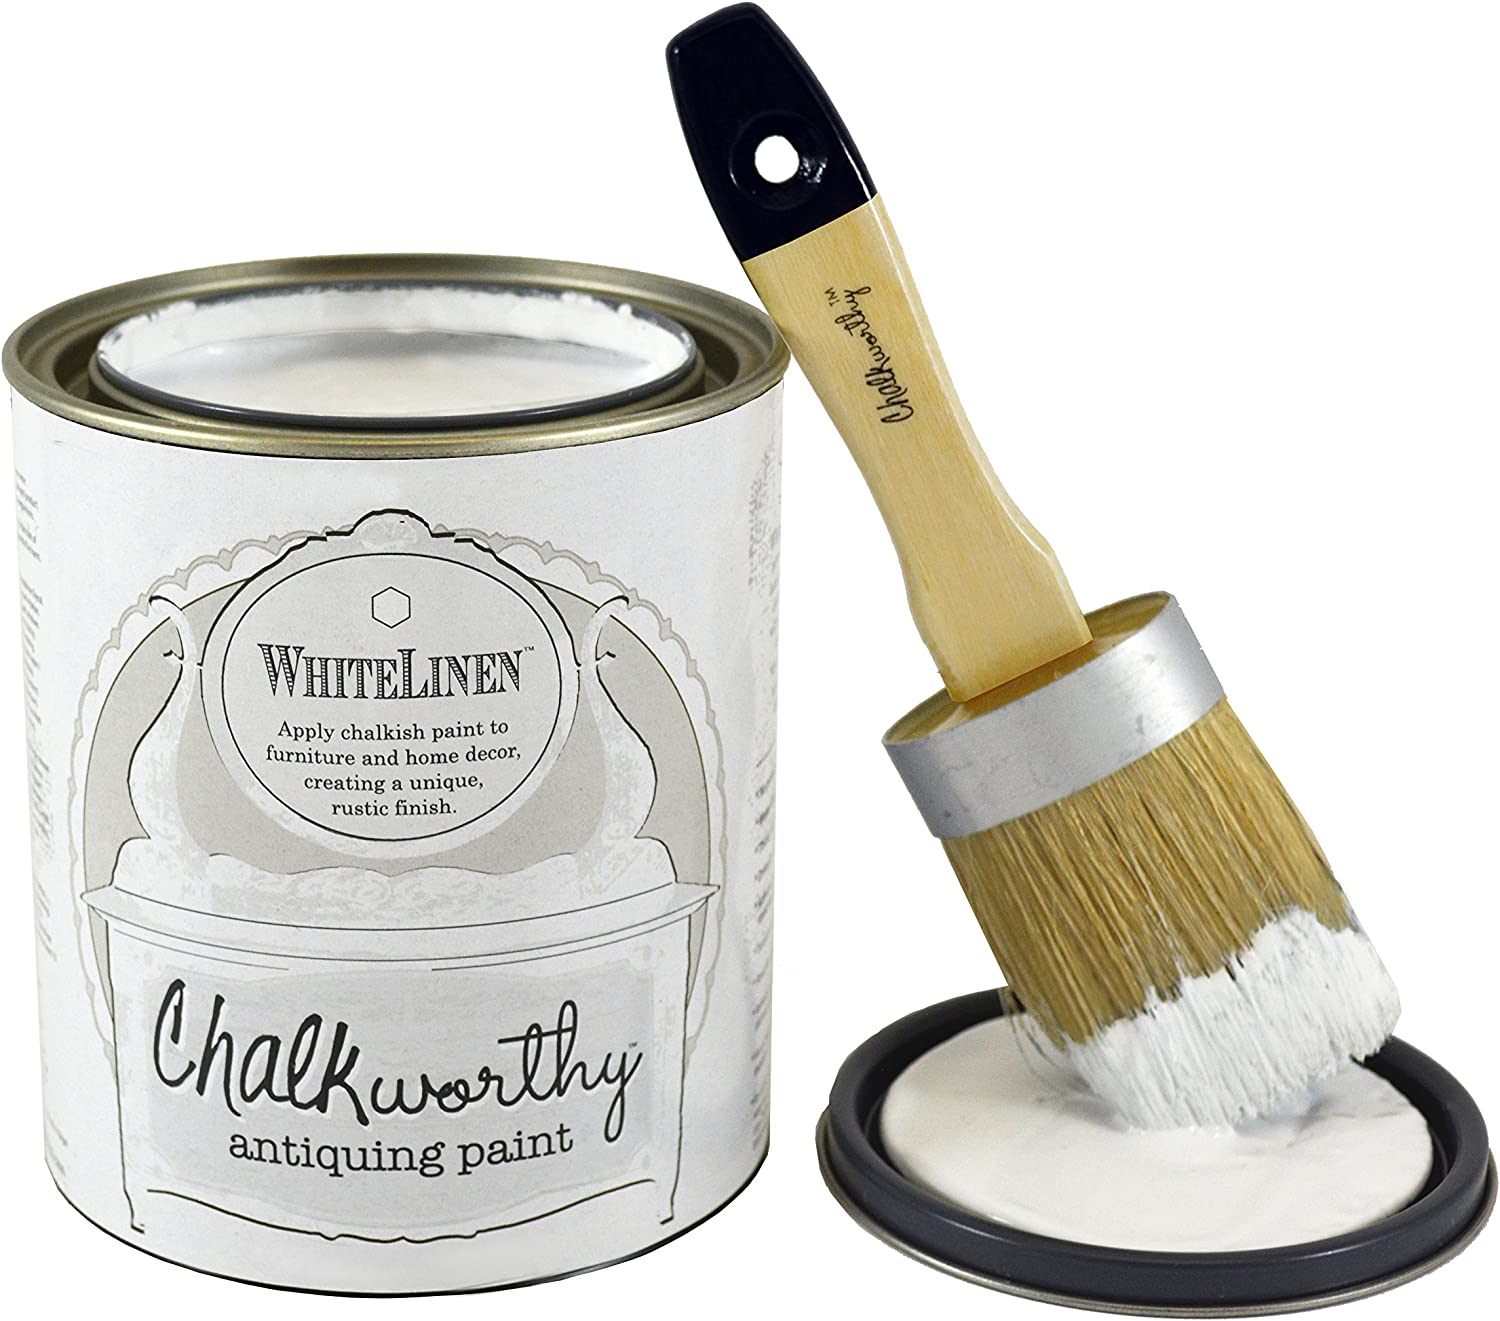 Giani Granite Chalkworthy Antiquing Paint, 16 oz, White Linen